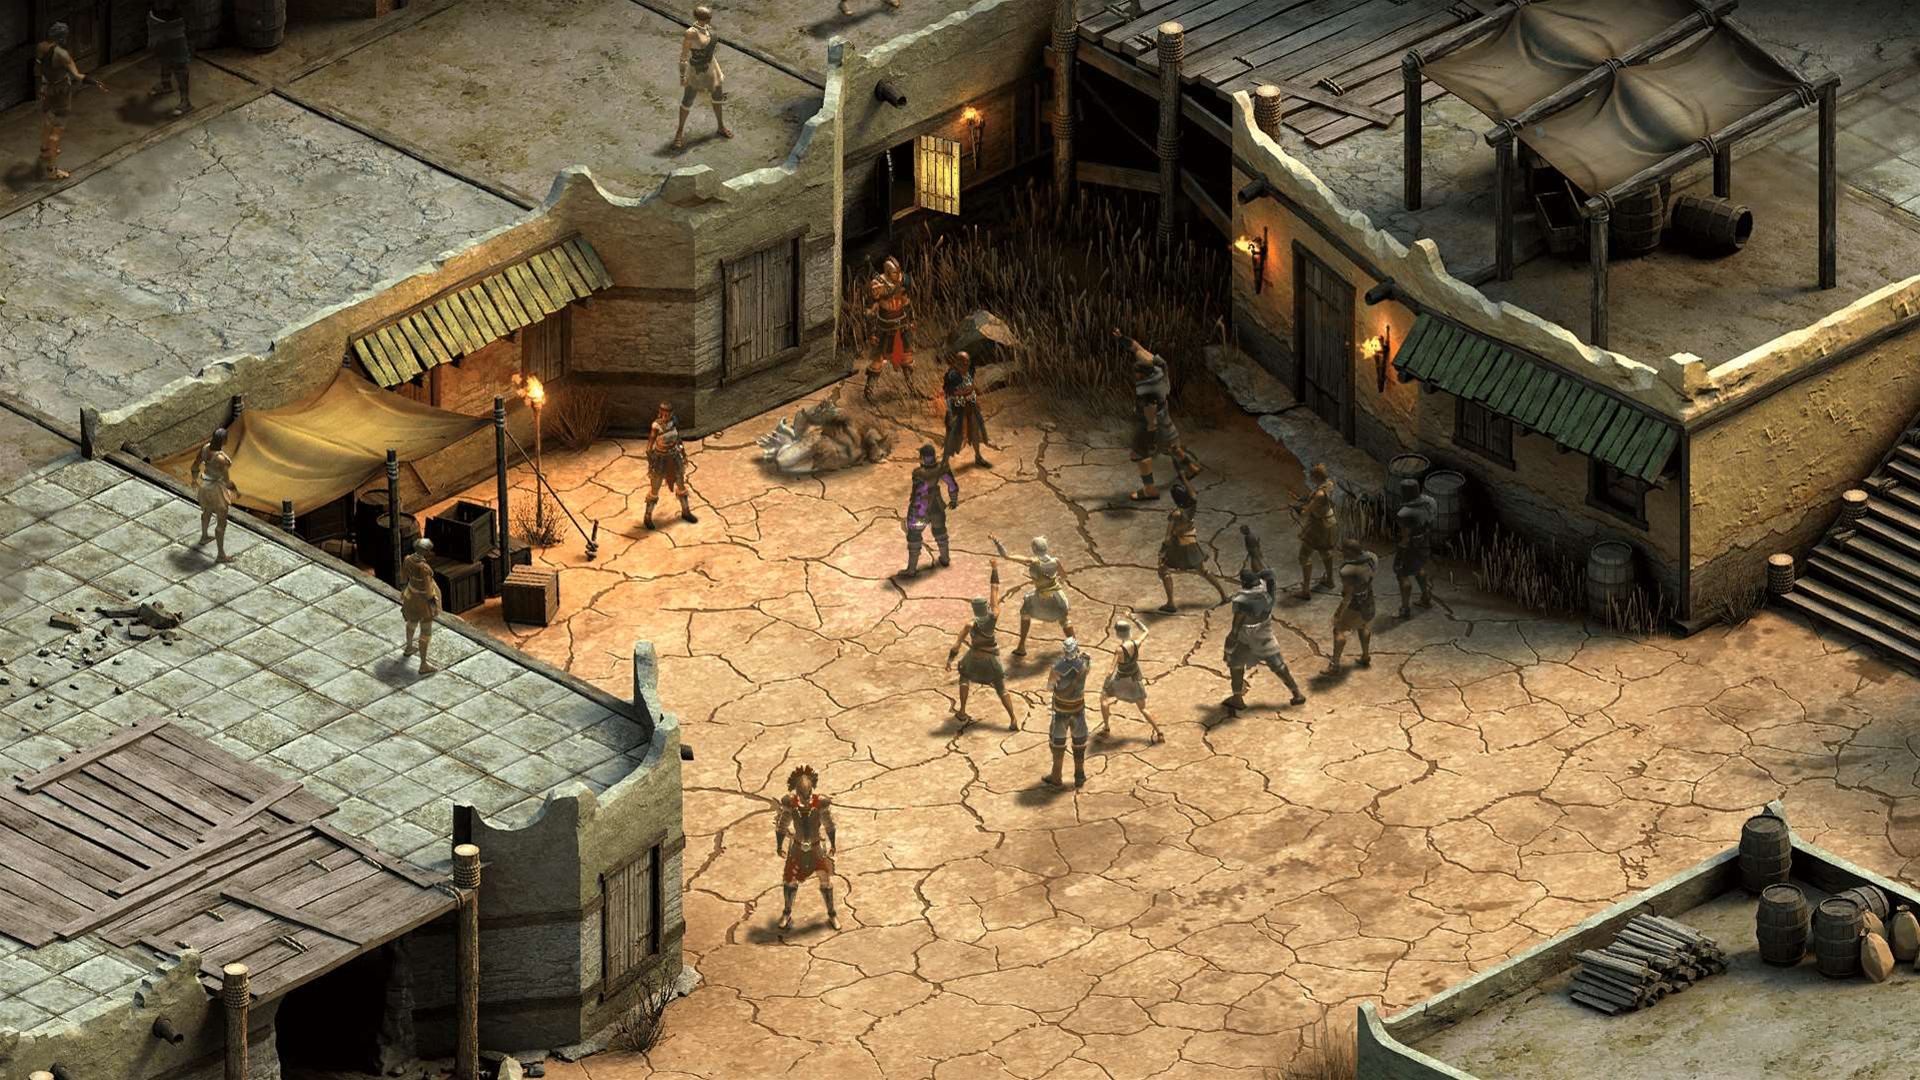 Screens from new game, Tyranny